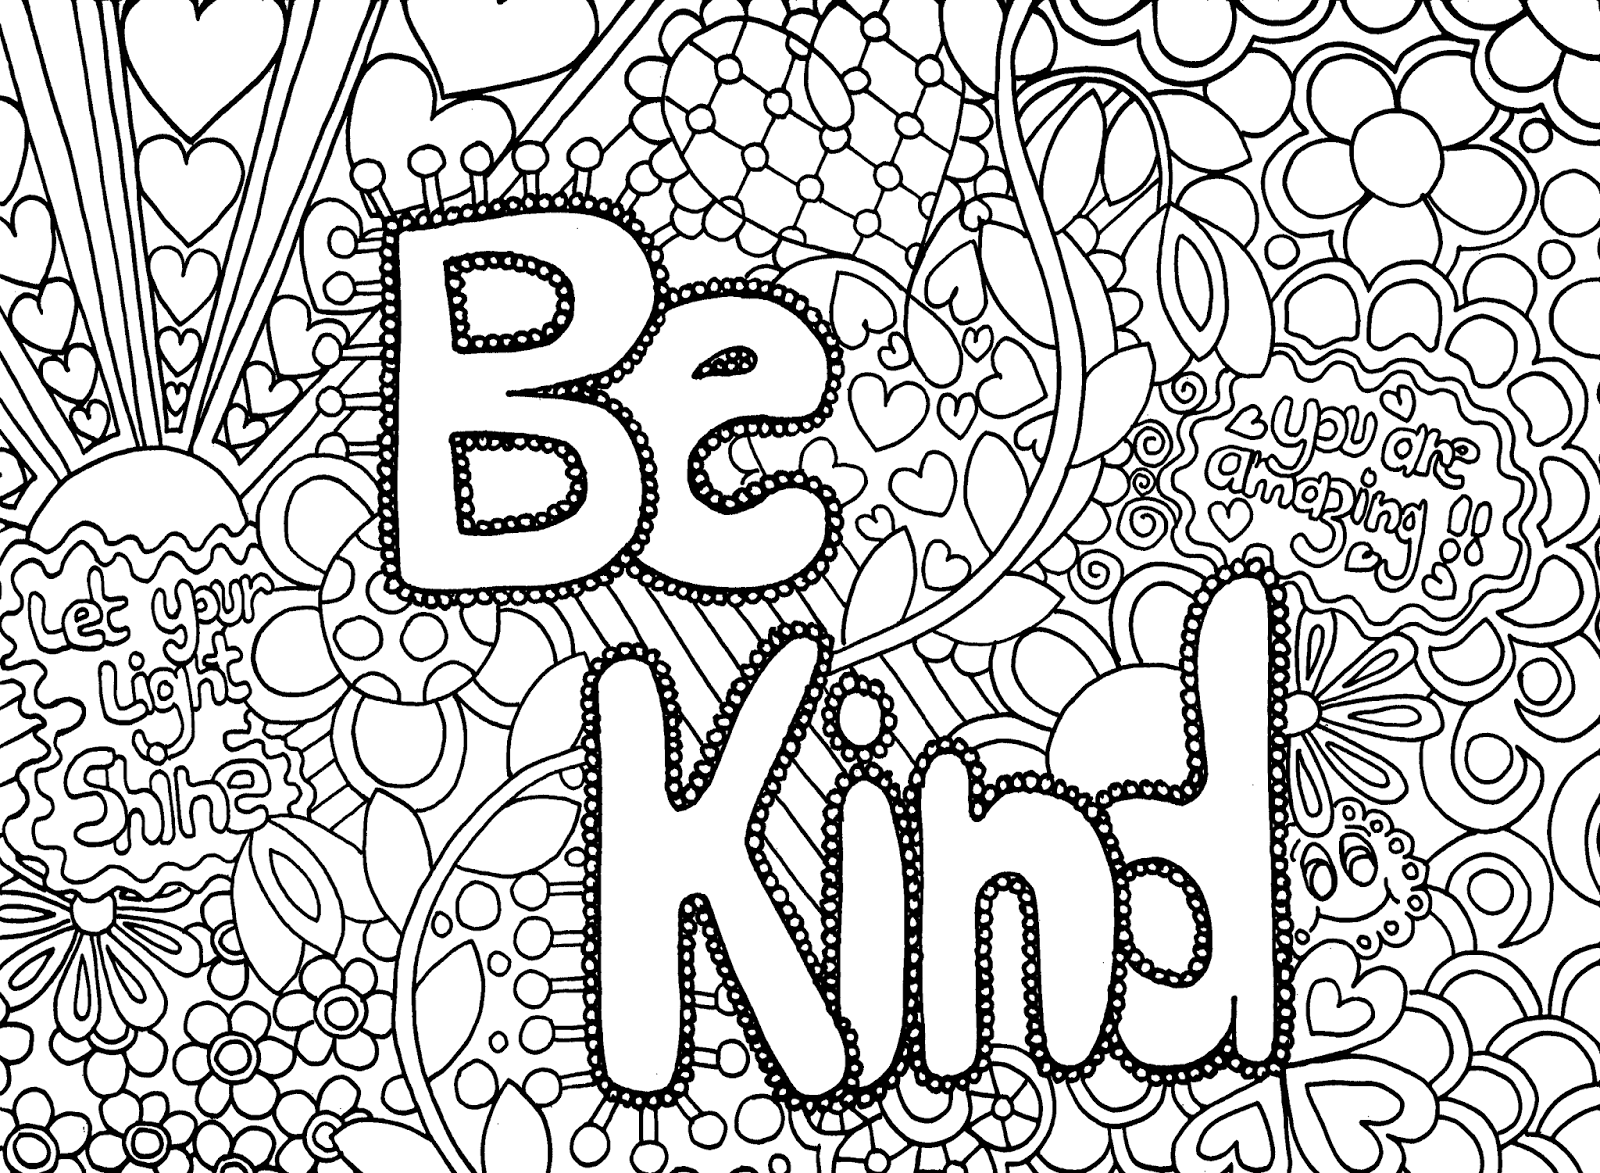 detailed online coloring pages | Very Detailed Coloring Pages - Coloring Home